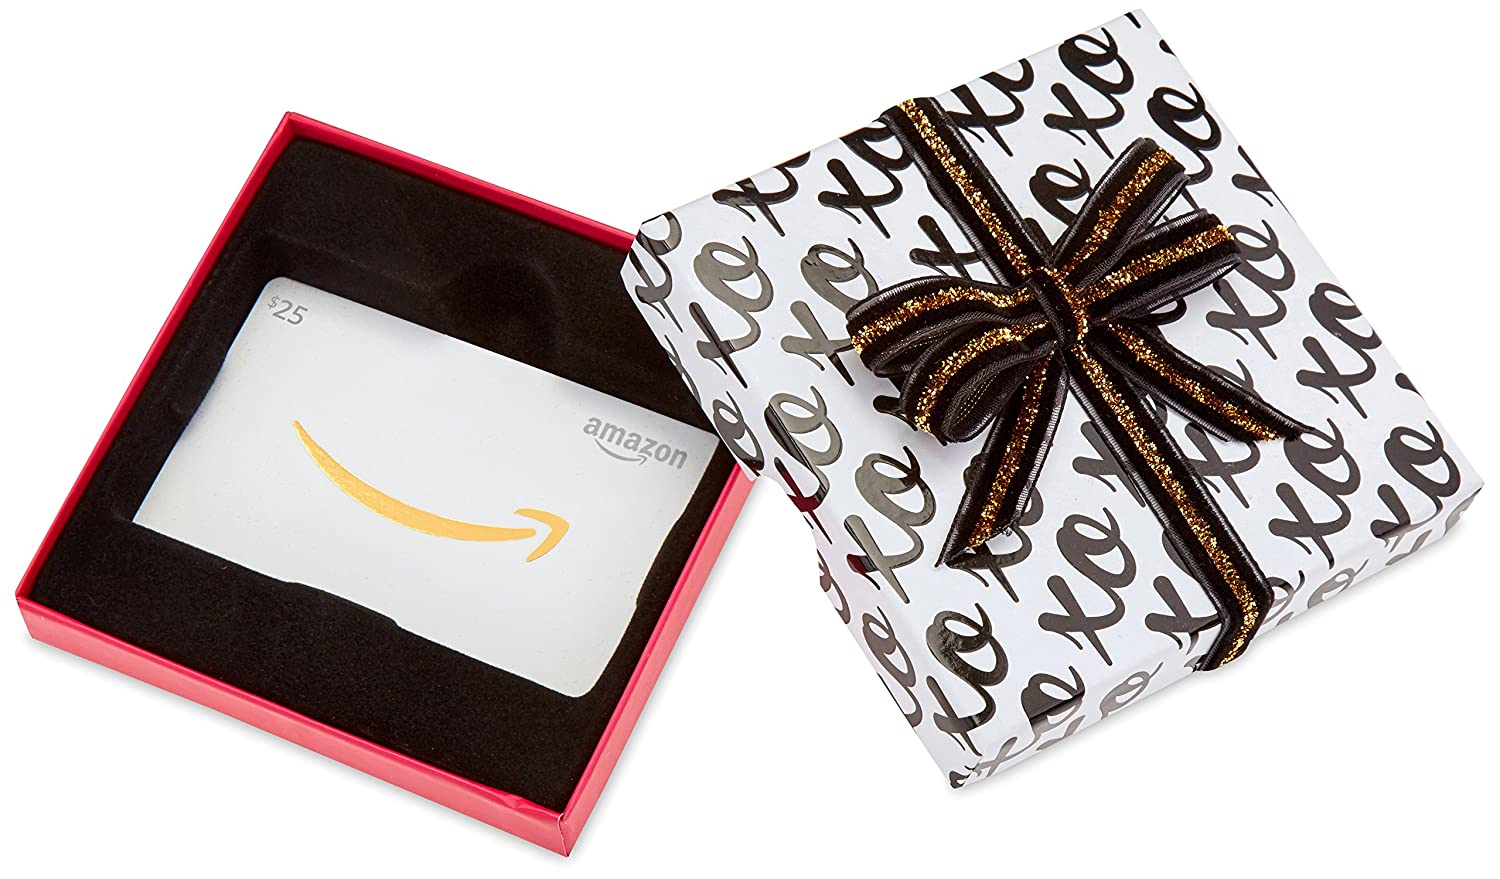 Amazon.ca Gift Card in a XOXO Box Amazon.com.ca Inc. Fixed